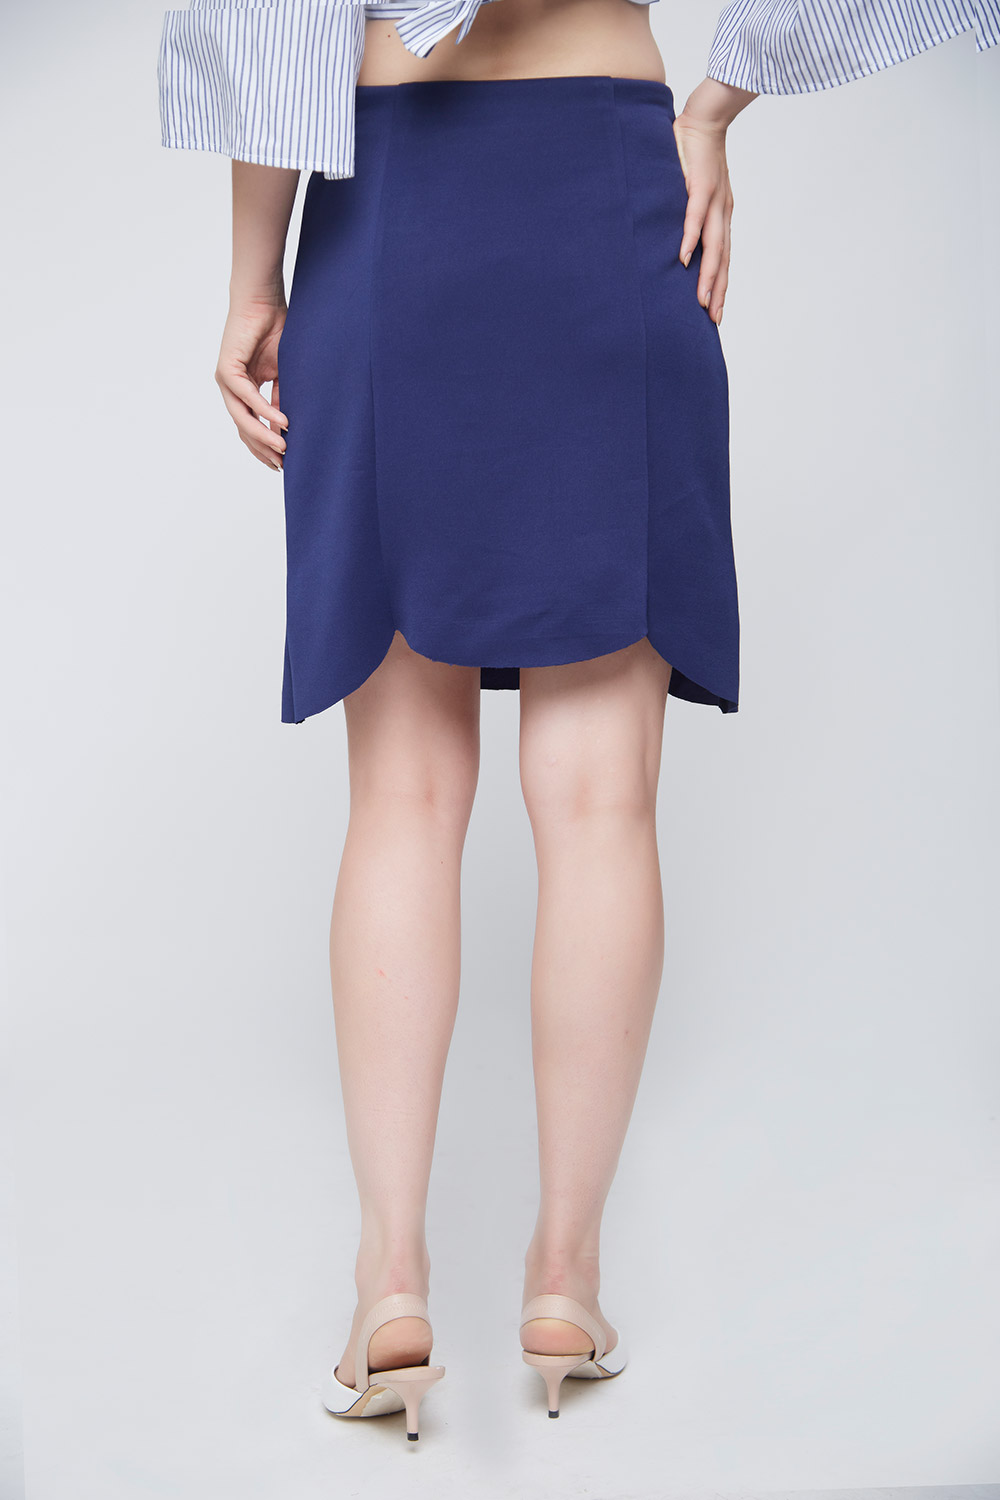 Blue Scalloped Skirt -2